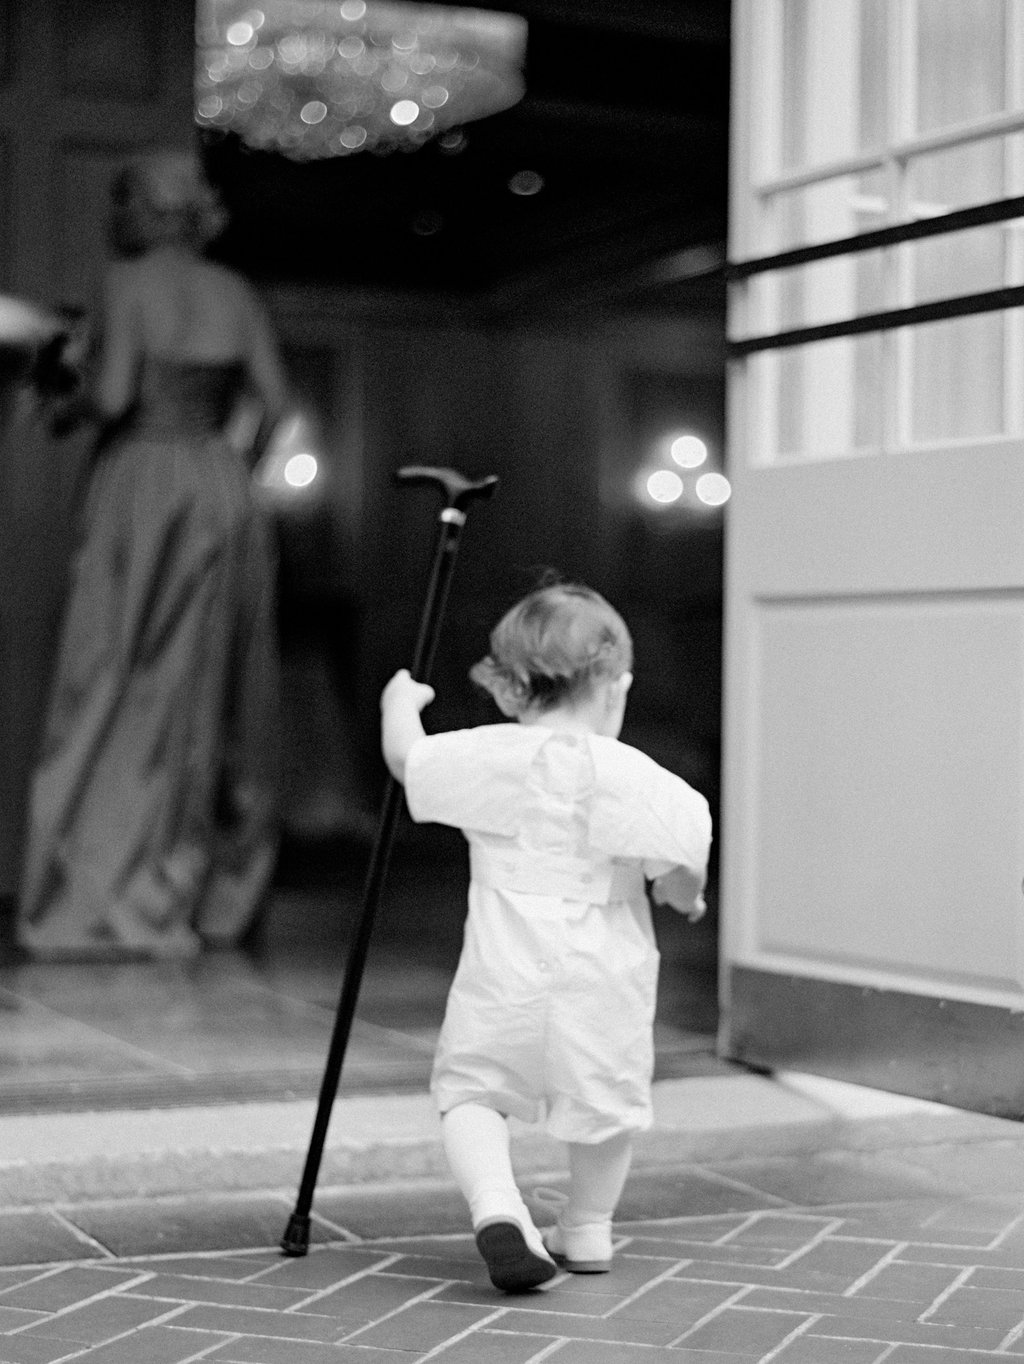 baby at a wedding in a white smocked outfit dancing with a black walking cane